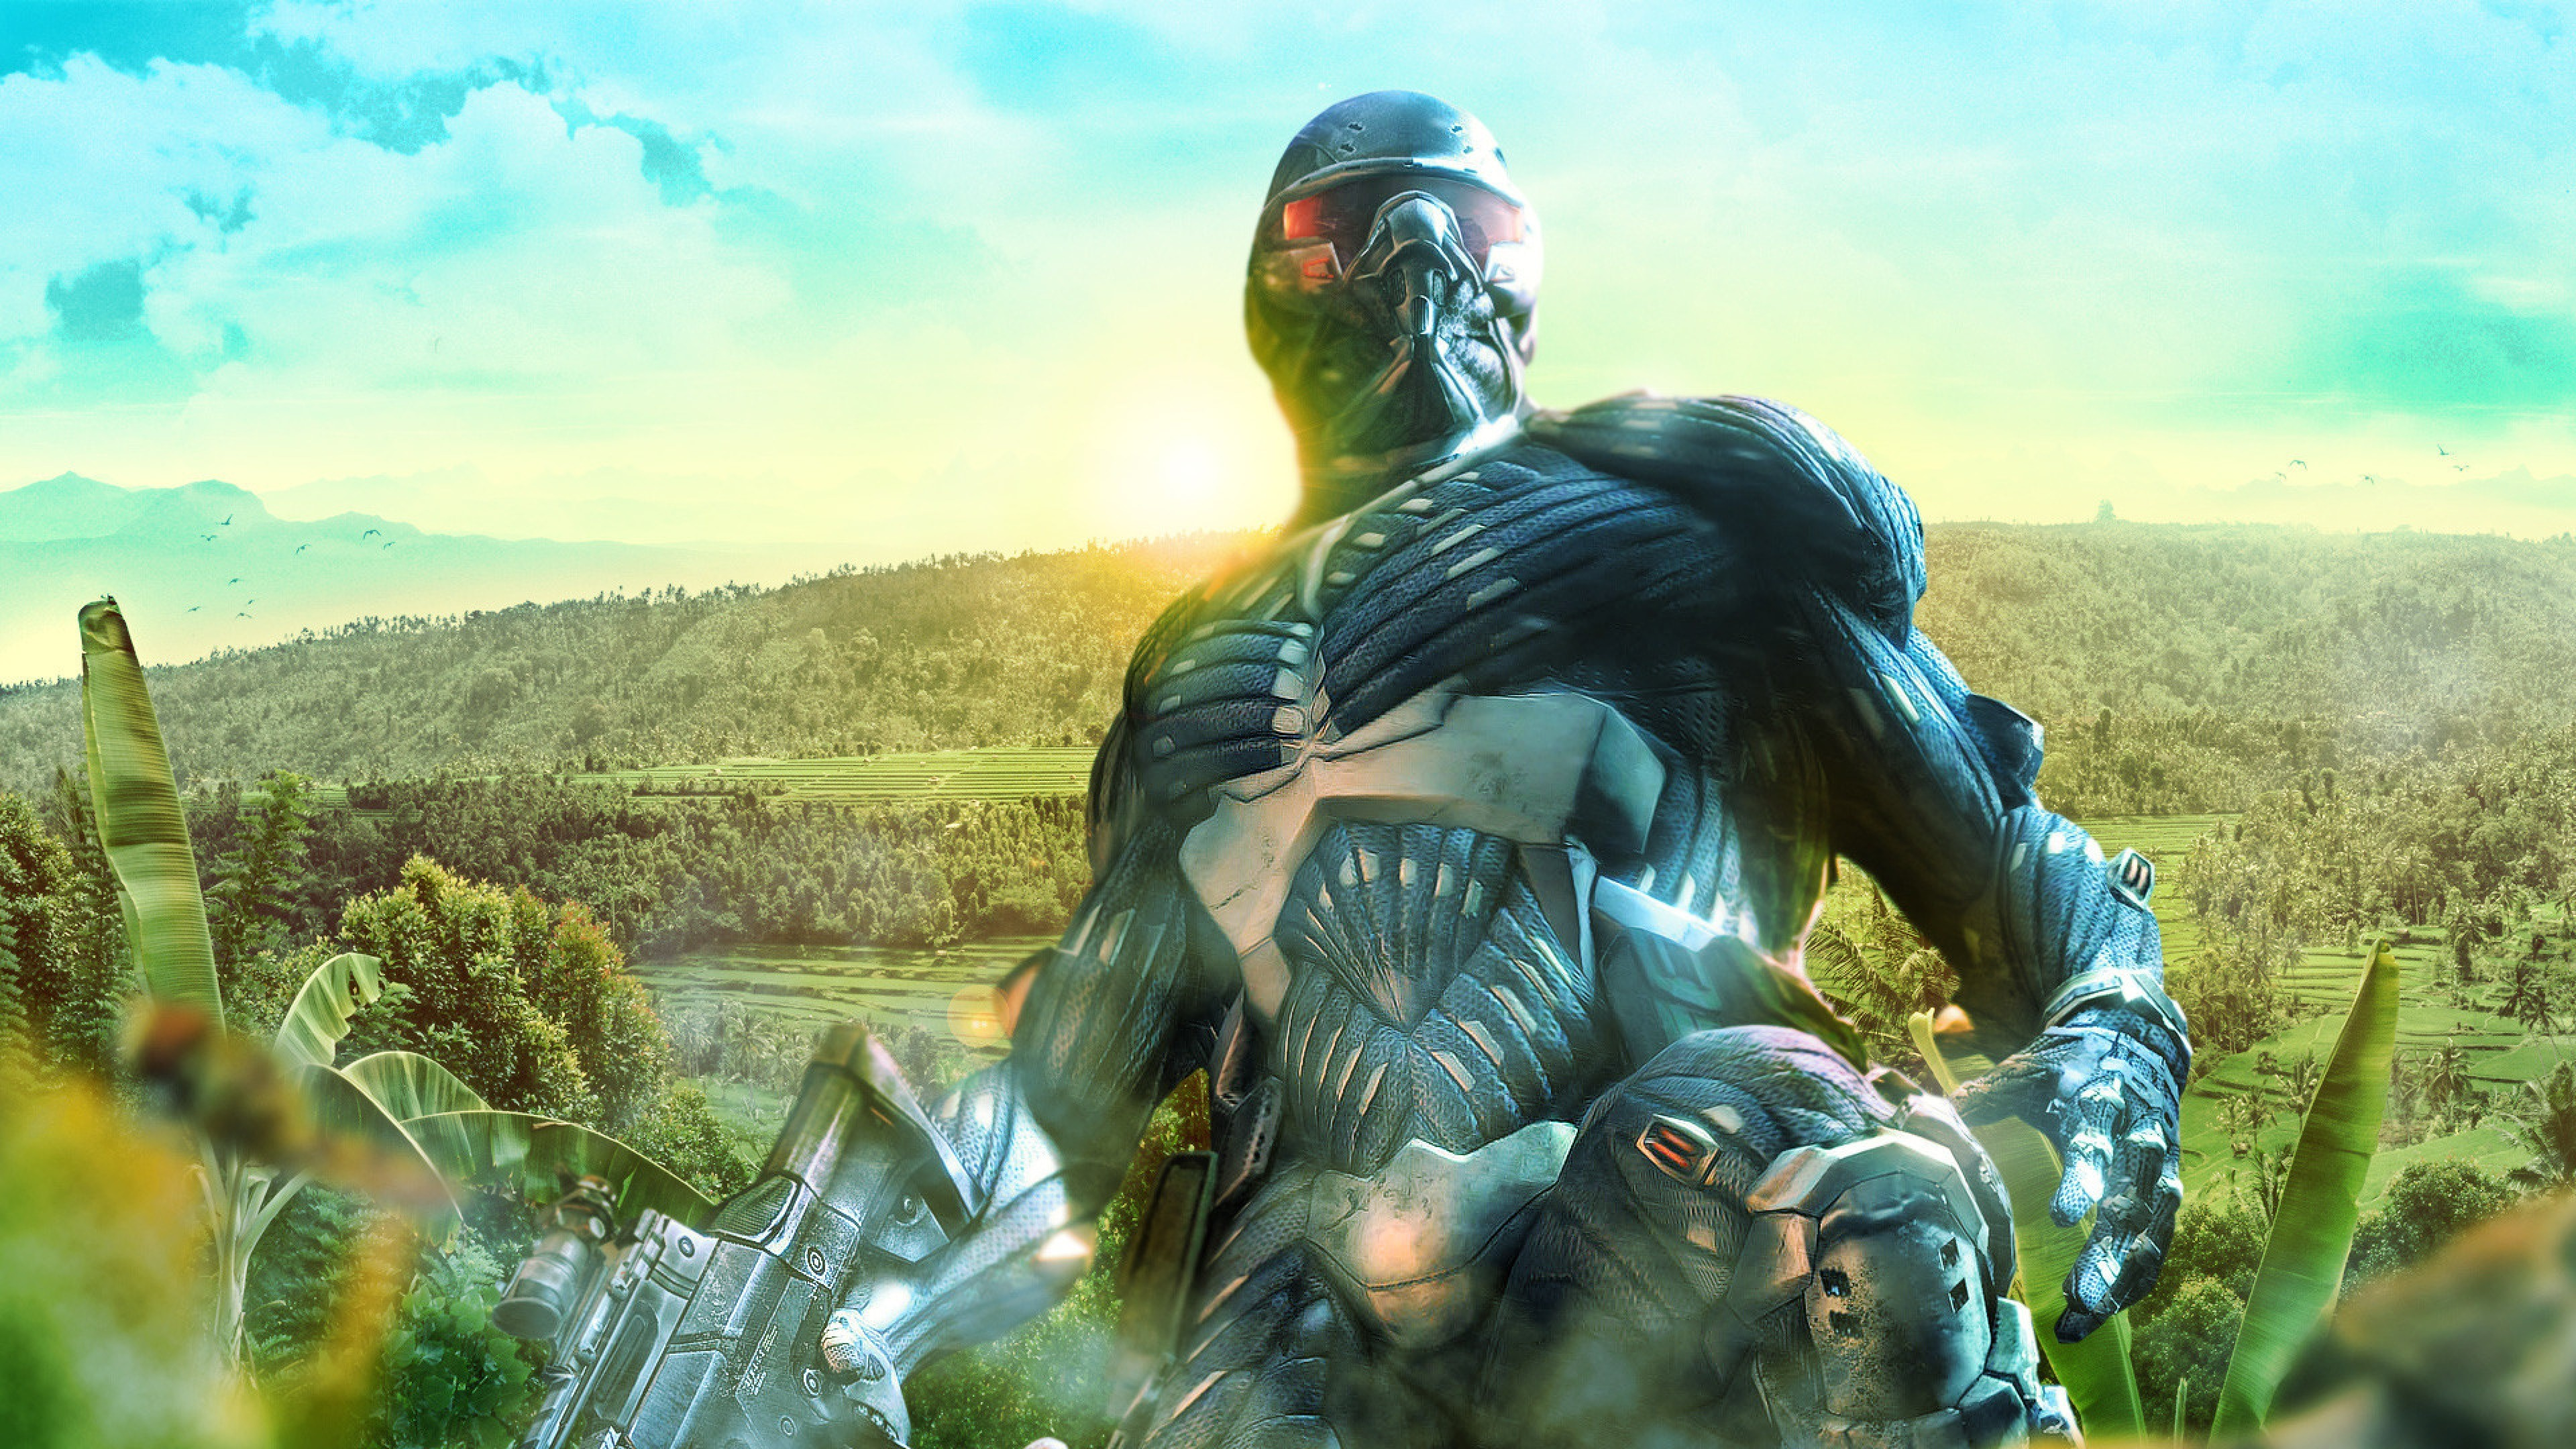 3840x2160 Preview wallpaper crysis, soldiers, art, nature, jungle